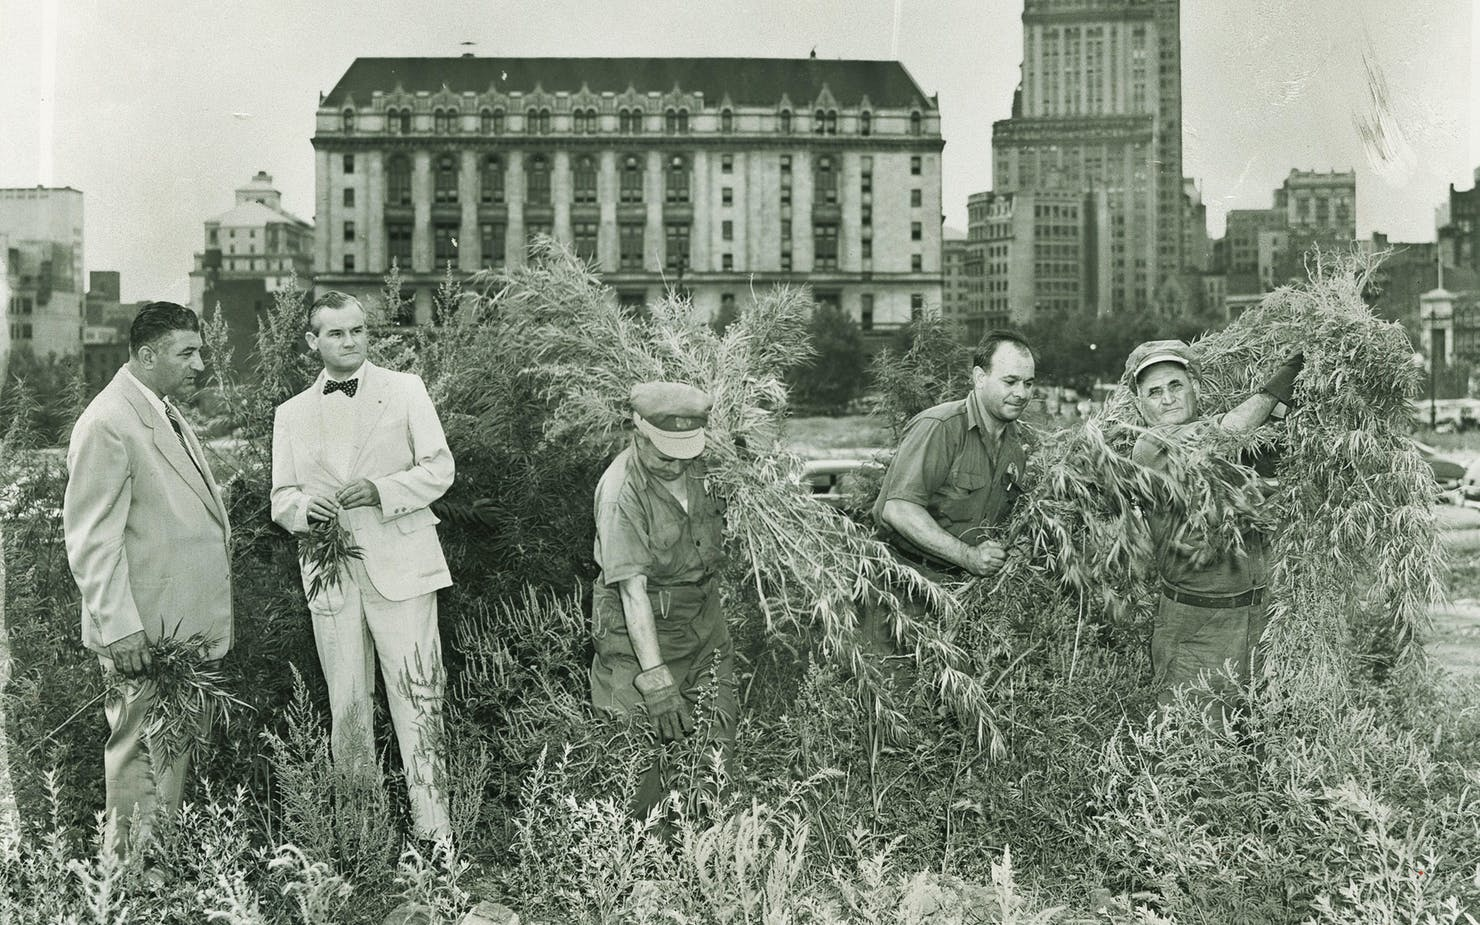 In the shadow of Brooklyn Federal Building, a new crop of marijuana is cut down by sanitation workers to rid the city of the weed. (Brooklyn Public Library)